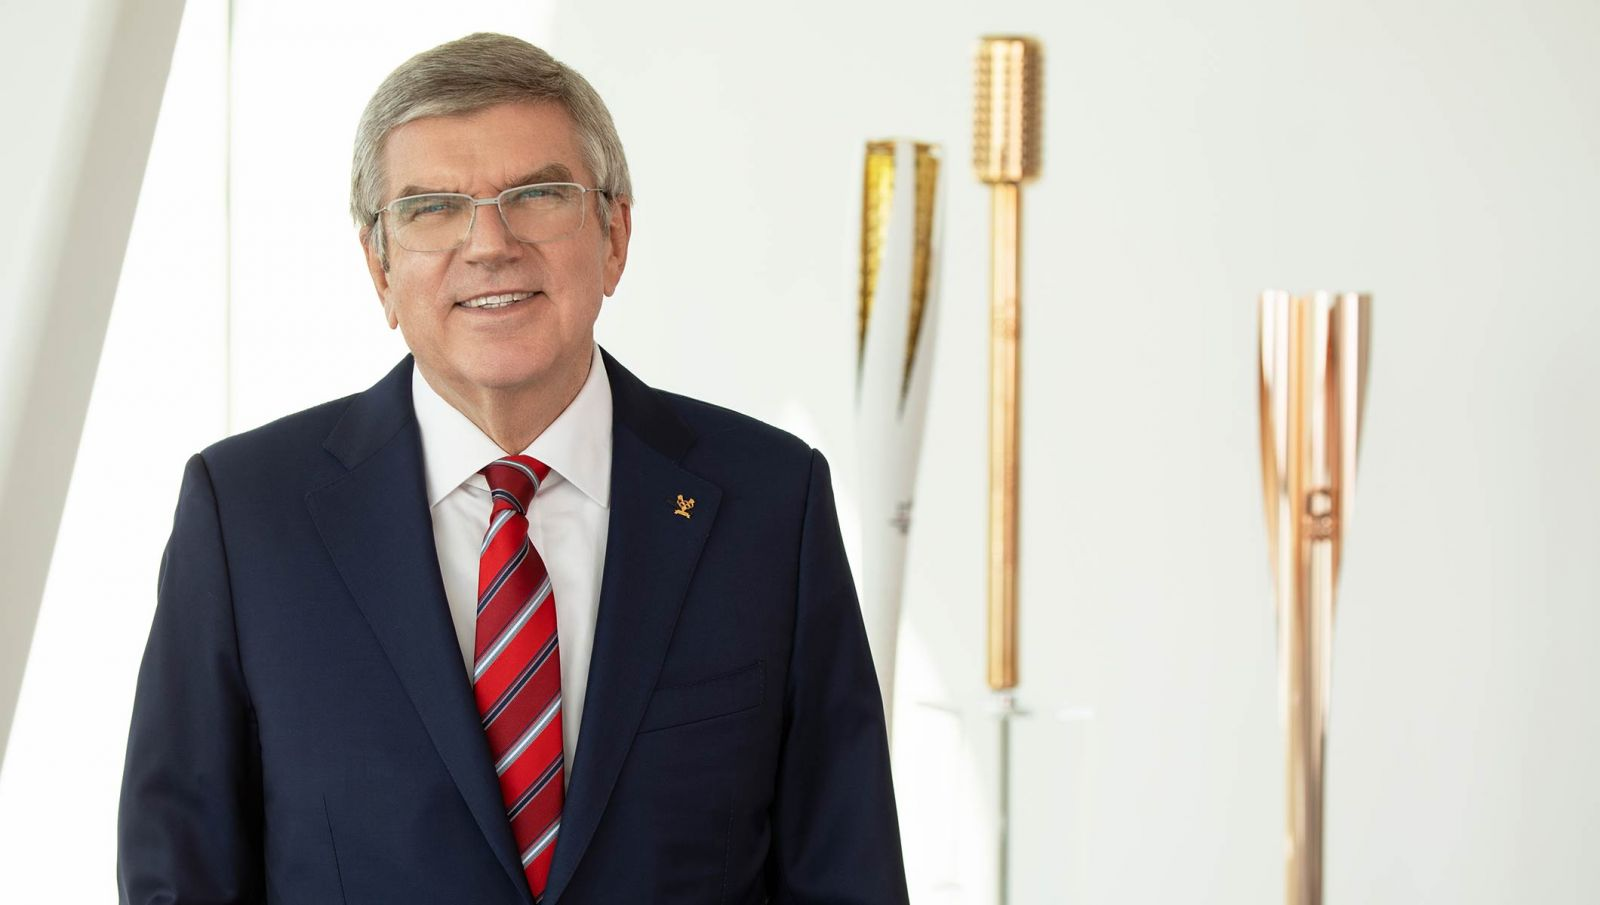 BACH URGES ORGANISERS TO IGNORE TOKYO 2020 DOUBTERS AS COORDINATION COMMISSION MEETING BEGINS